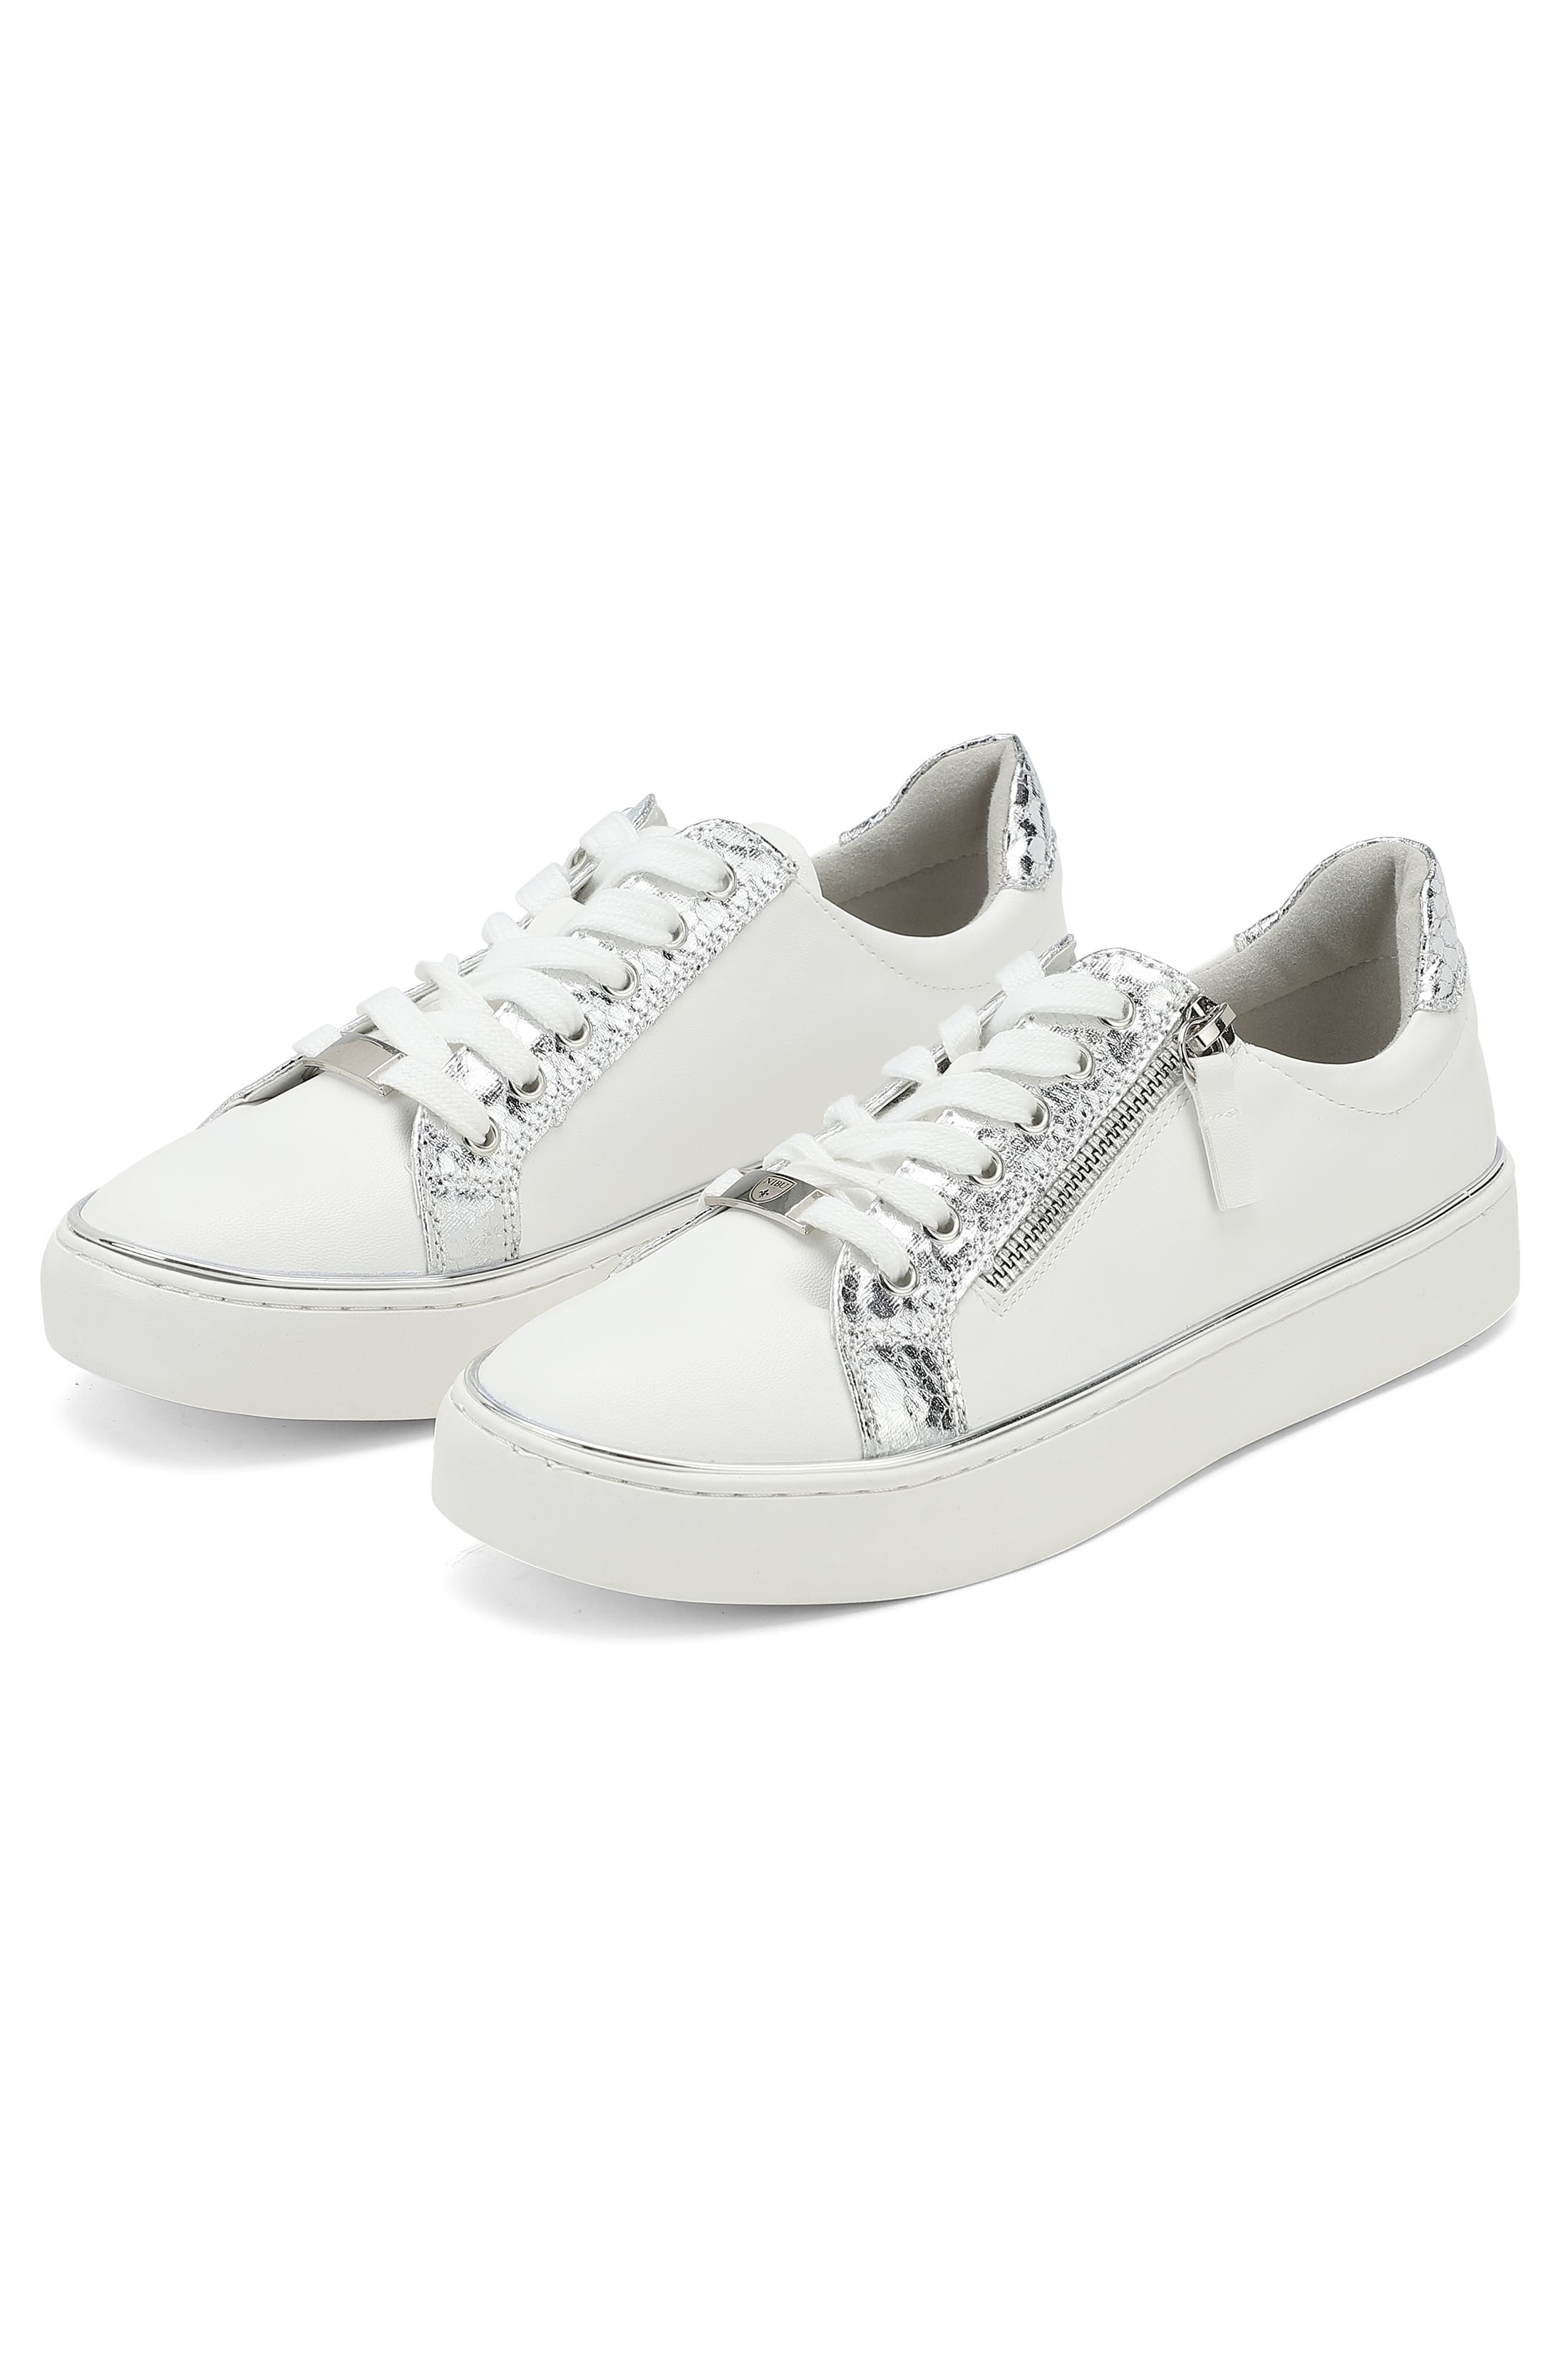 Sneakers with silver-coloured details